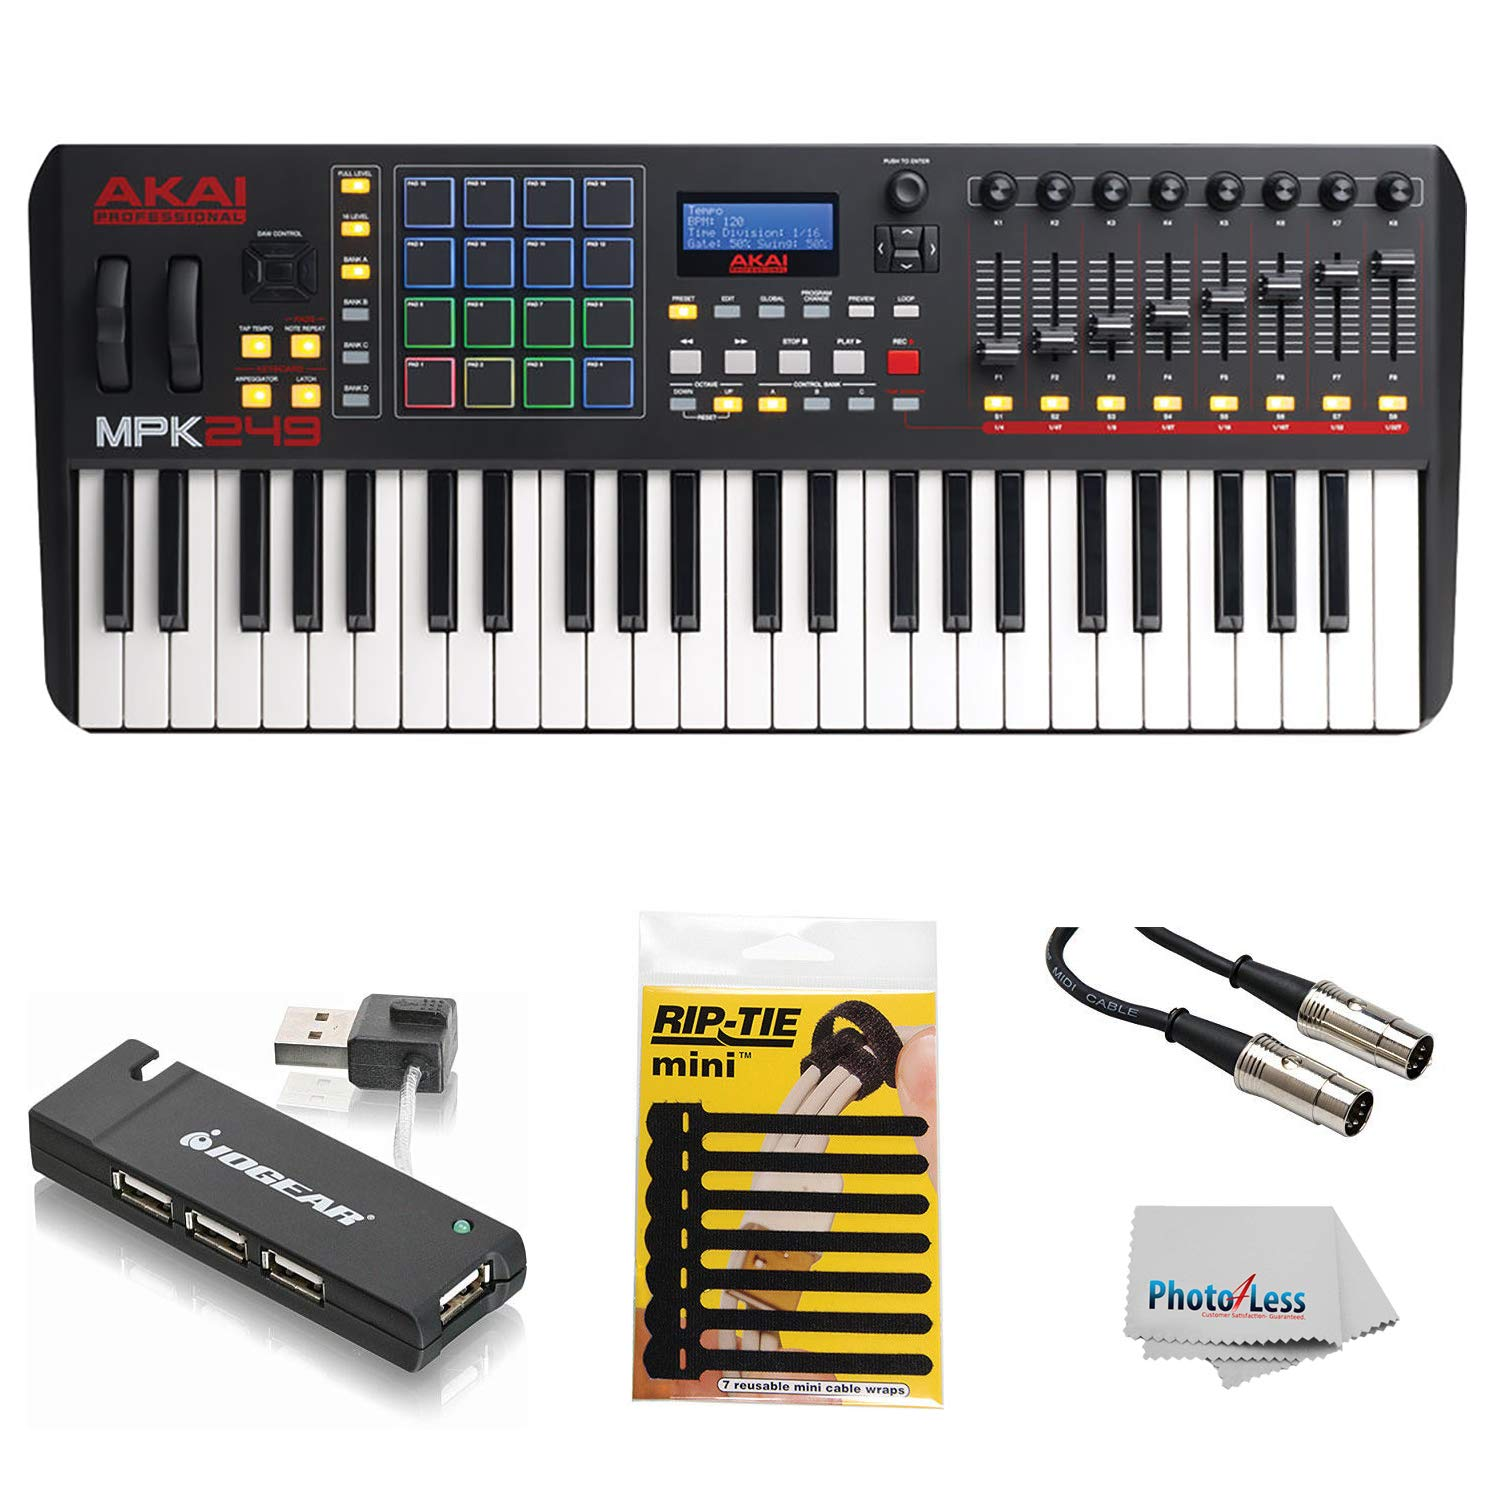 Akai Professional Compact Keyboard Controller (49-Key) with 4-Port USB 2.0 Hub + MIDI Cable Pack of Cable ties & Cleaning Cloth by Akai